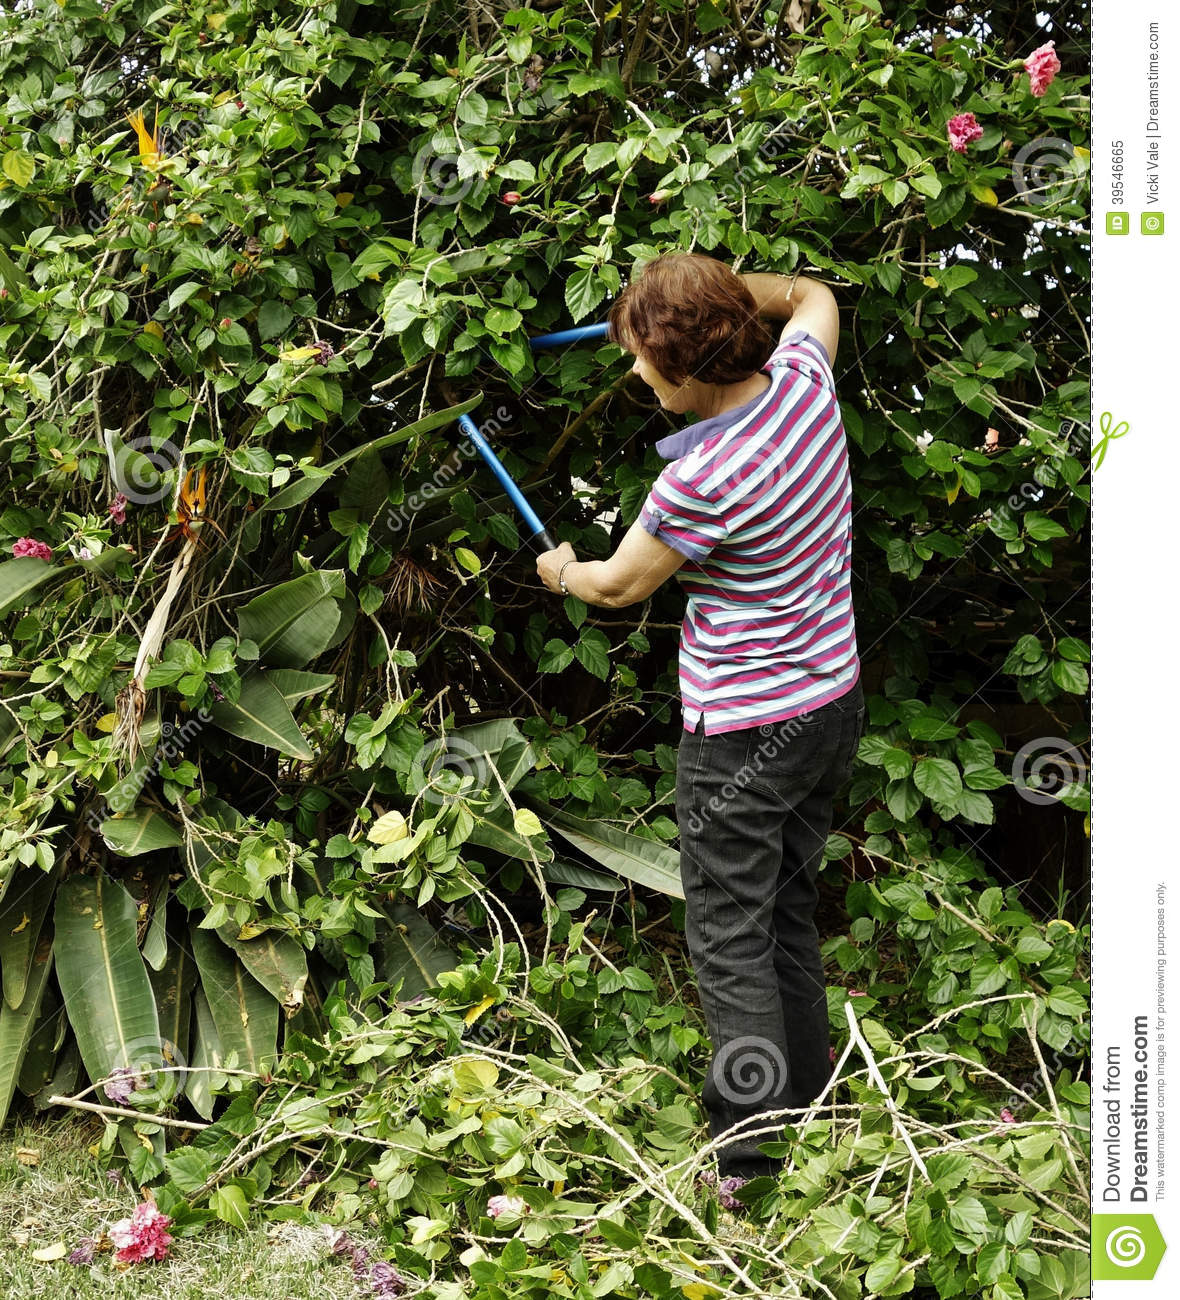 Middle Aged Woman Pruning Hibiscus Shrubs With Sec Stock Image